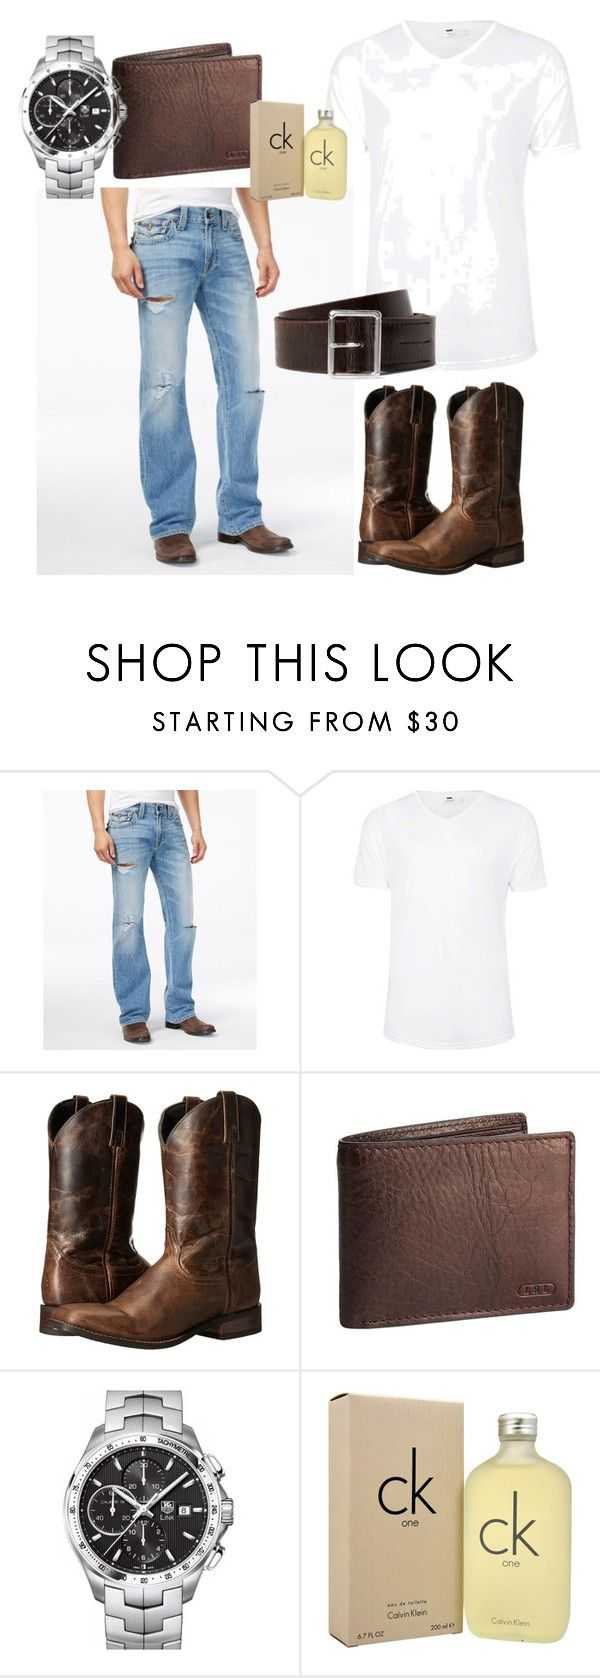 """Ladies Love Country Boys"" by thecamillekent ❤ liked on Polyvore featuring True Religion, Topman, Dingo, Lauren Ralph Lauren, TAG Heuer, Calvin Klein, country, men's fashion and menswear"